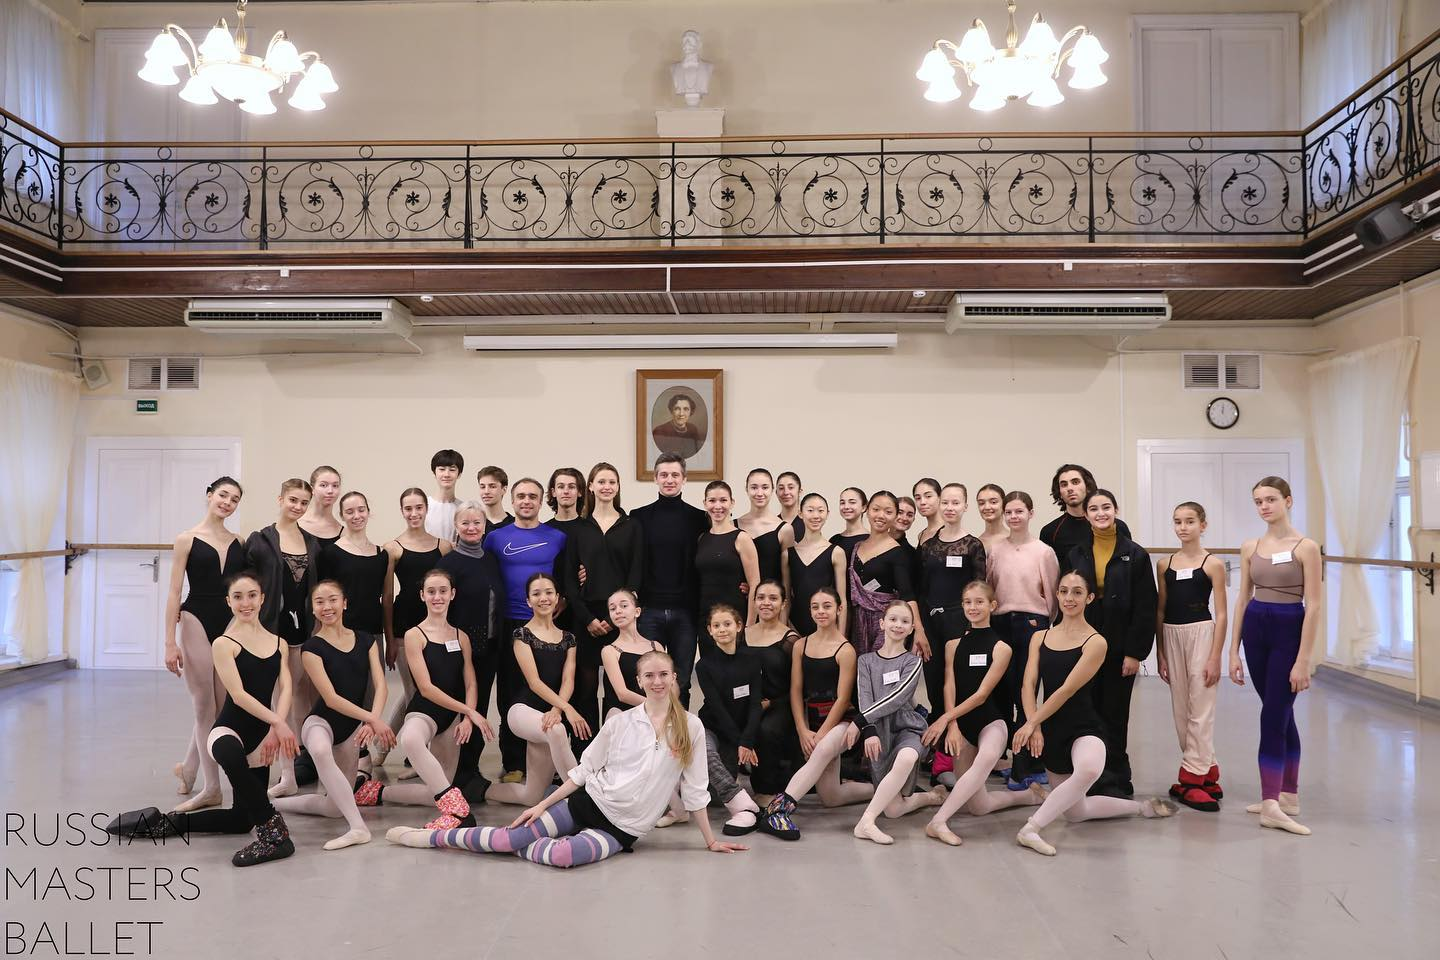 RMB in Marius Petipa studio at the Vaganova Ballet Academy